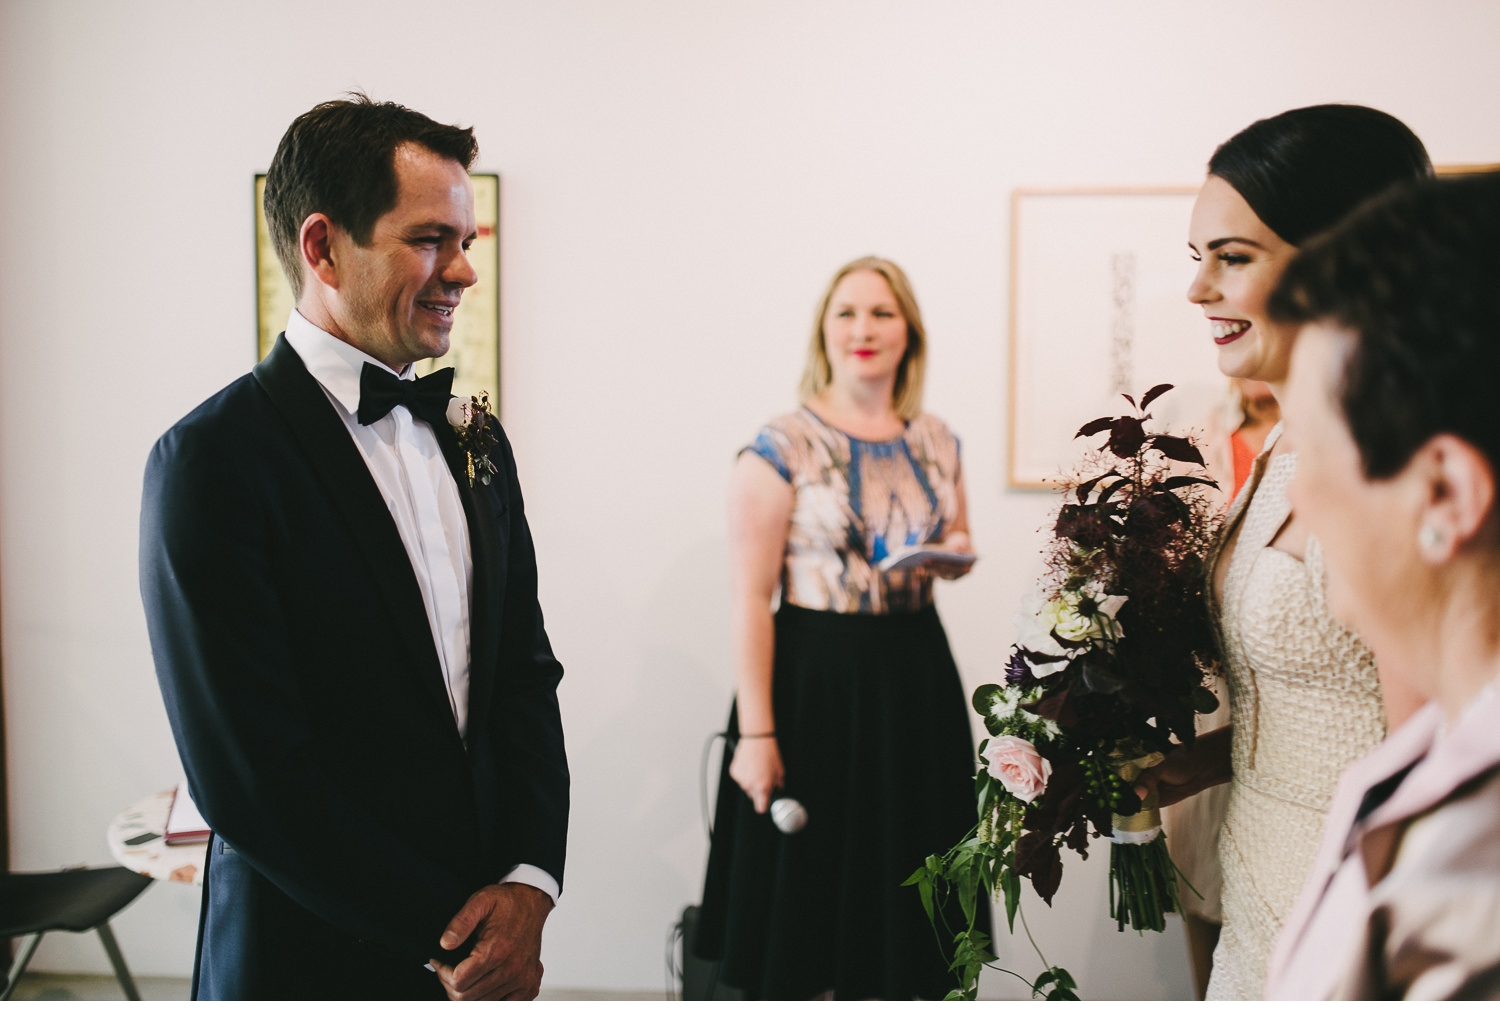 Morgan Roberts Photography_Wedding_nishi gallery hotel hotel_Jay and Lucy 1697.jpg